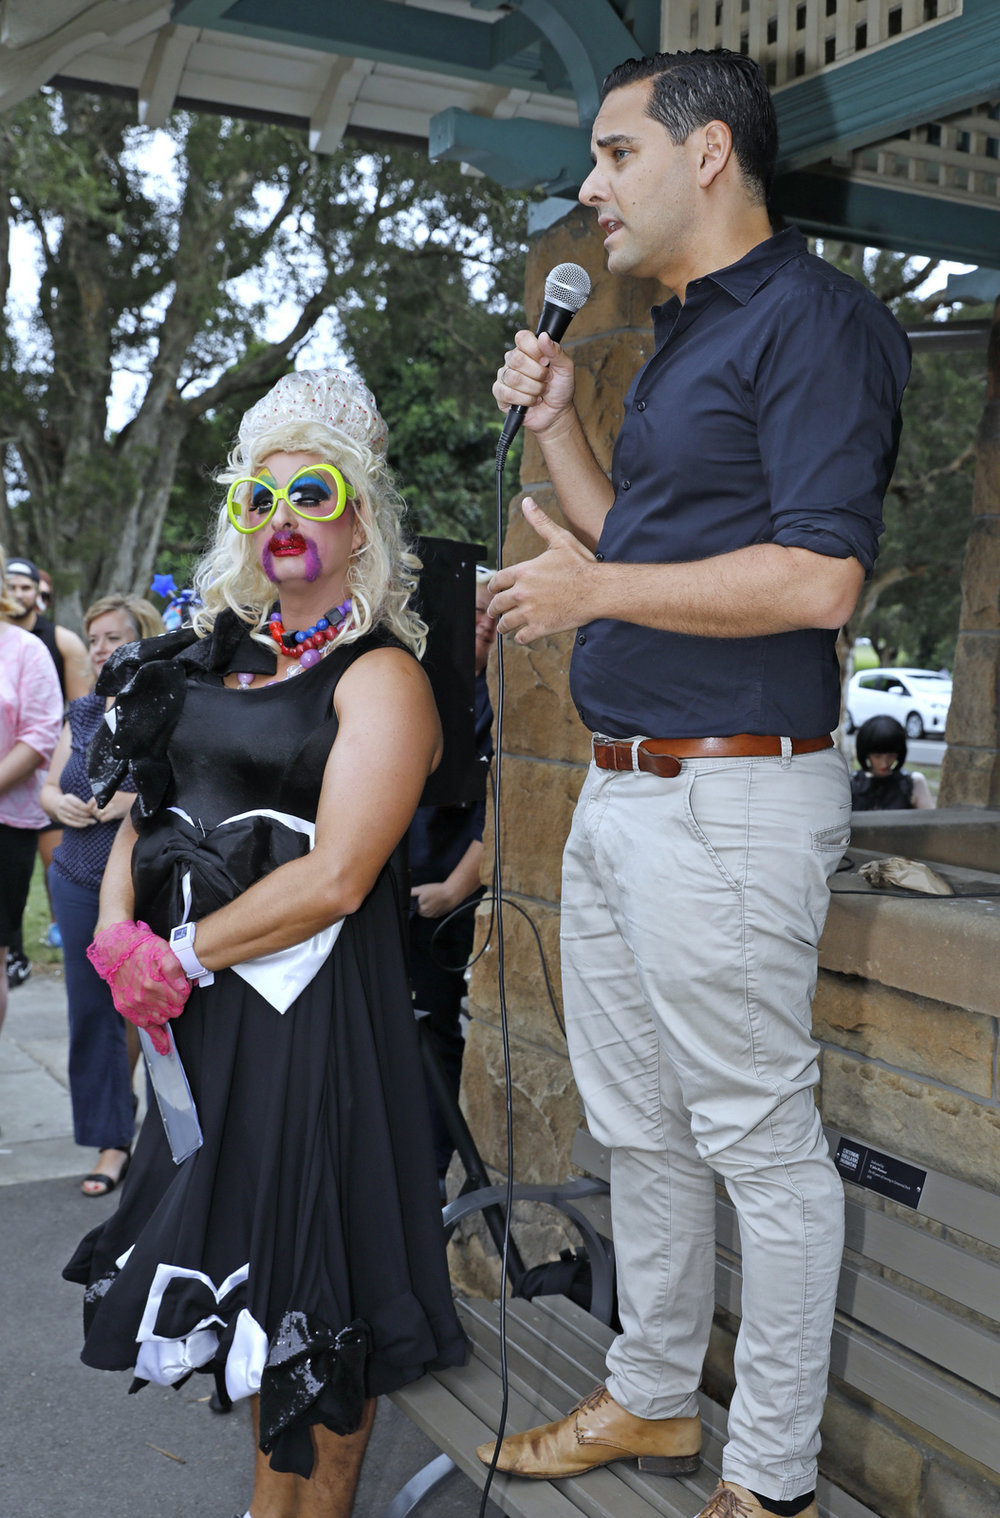 ann-marie calilhanna- little black dress run @ centennial park_1512.JPG